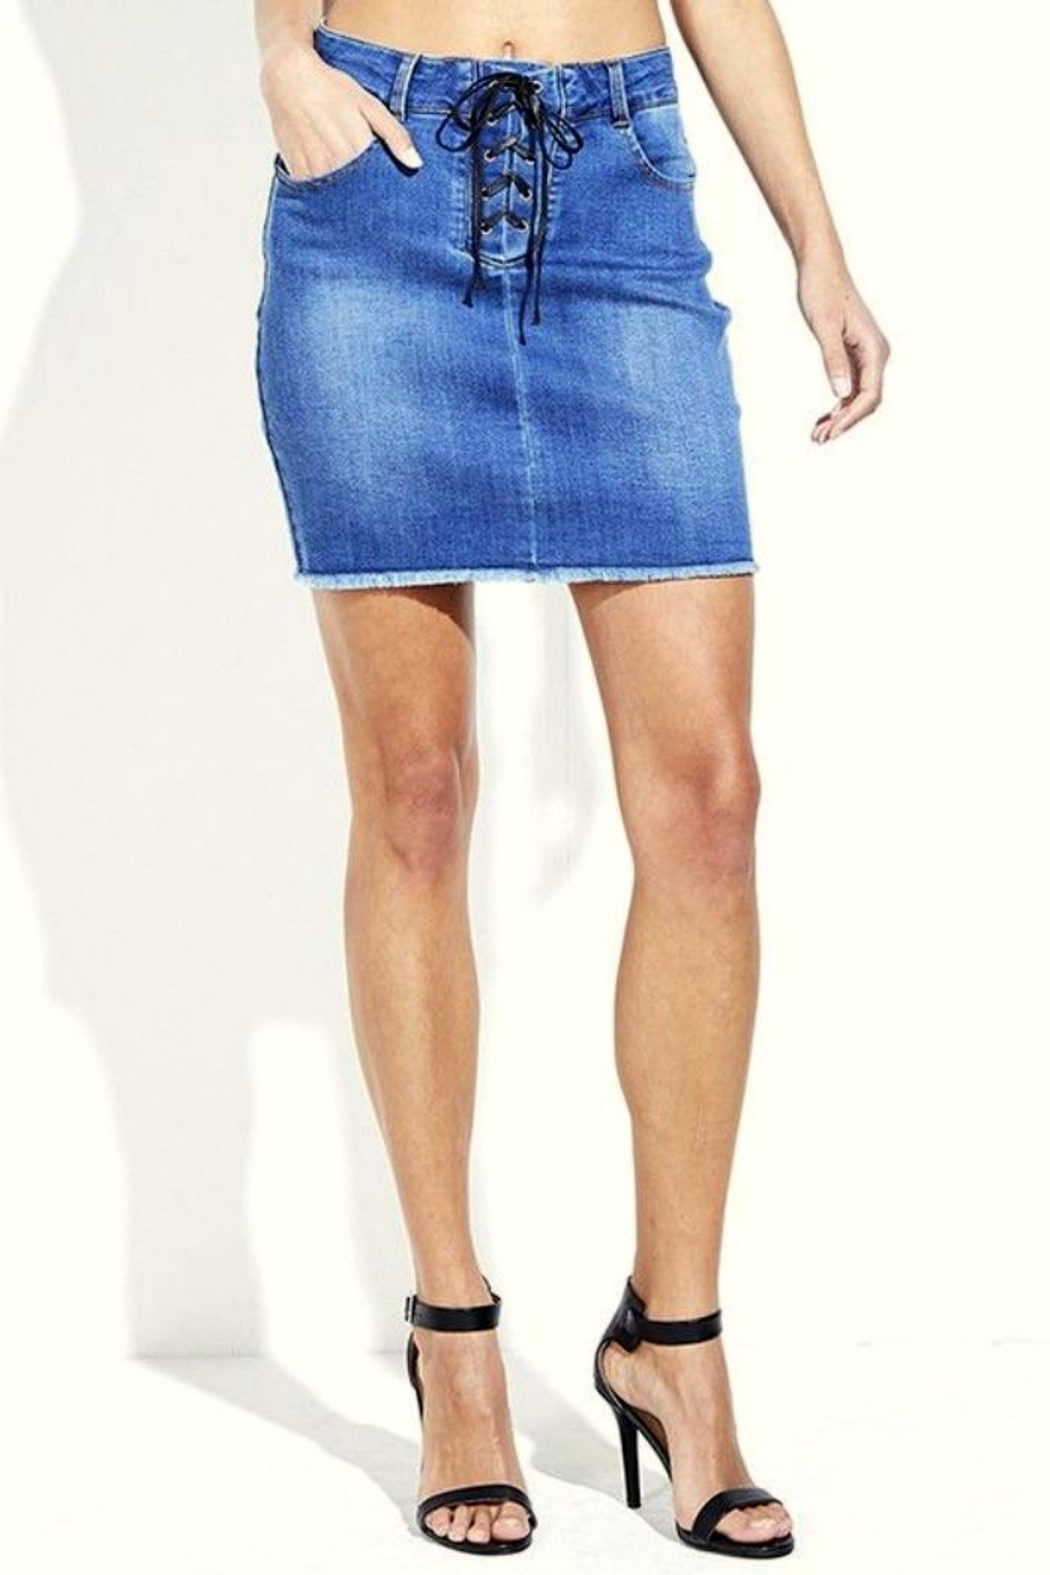 Simply Chic Lace Up Denim Skirt - Main Image